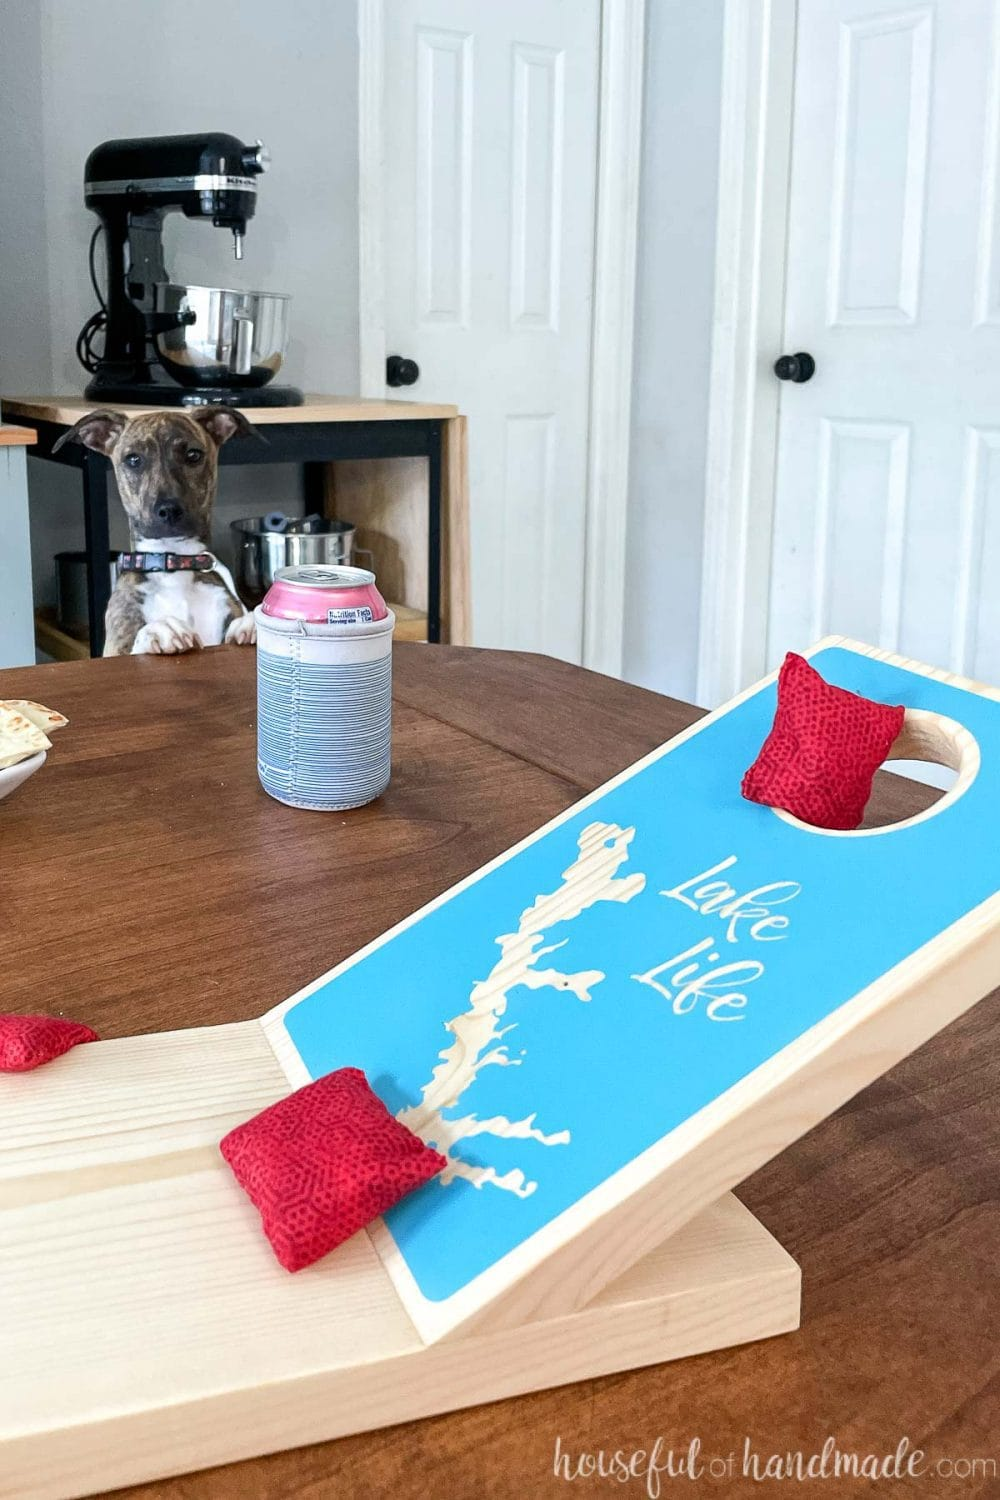 Close up of the one side of the miniature cornhole board on a table with red bean bags on the board and a puppy looking at it in the background.